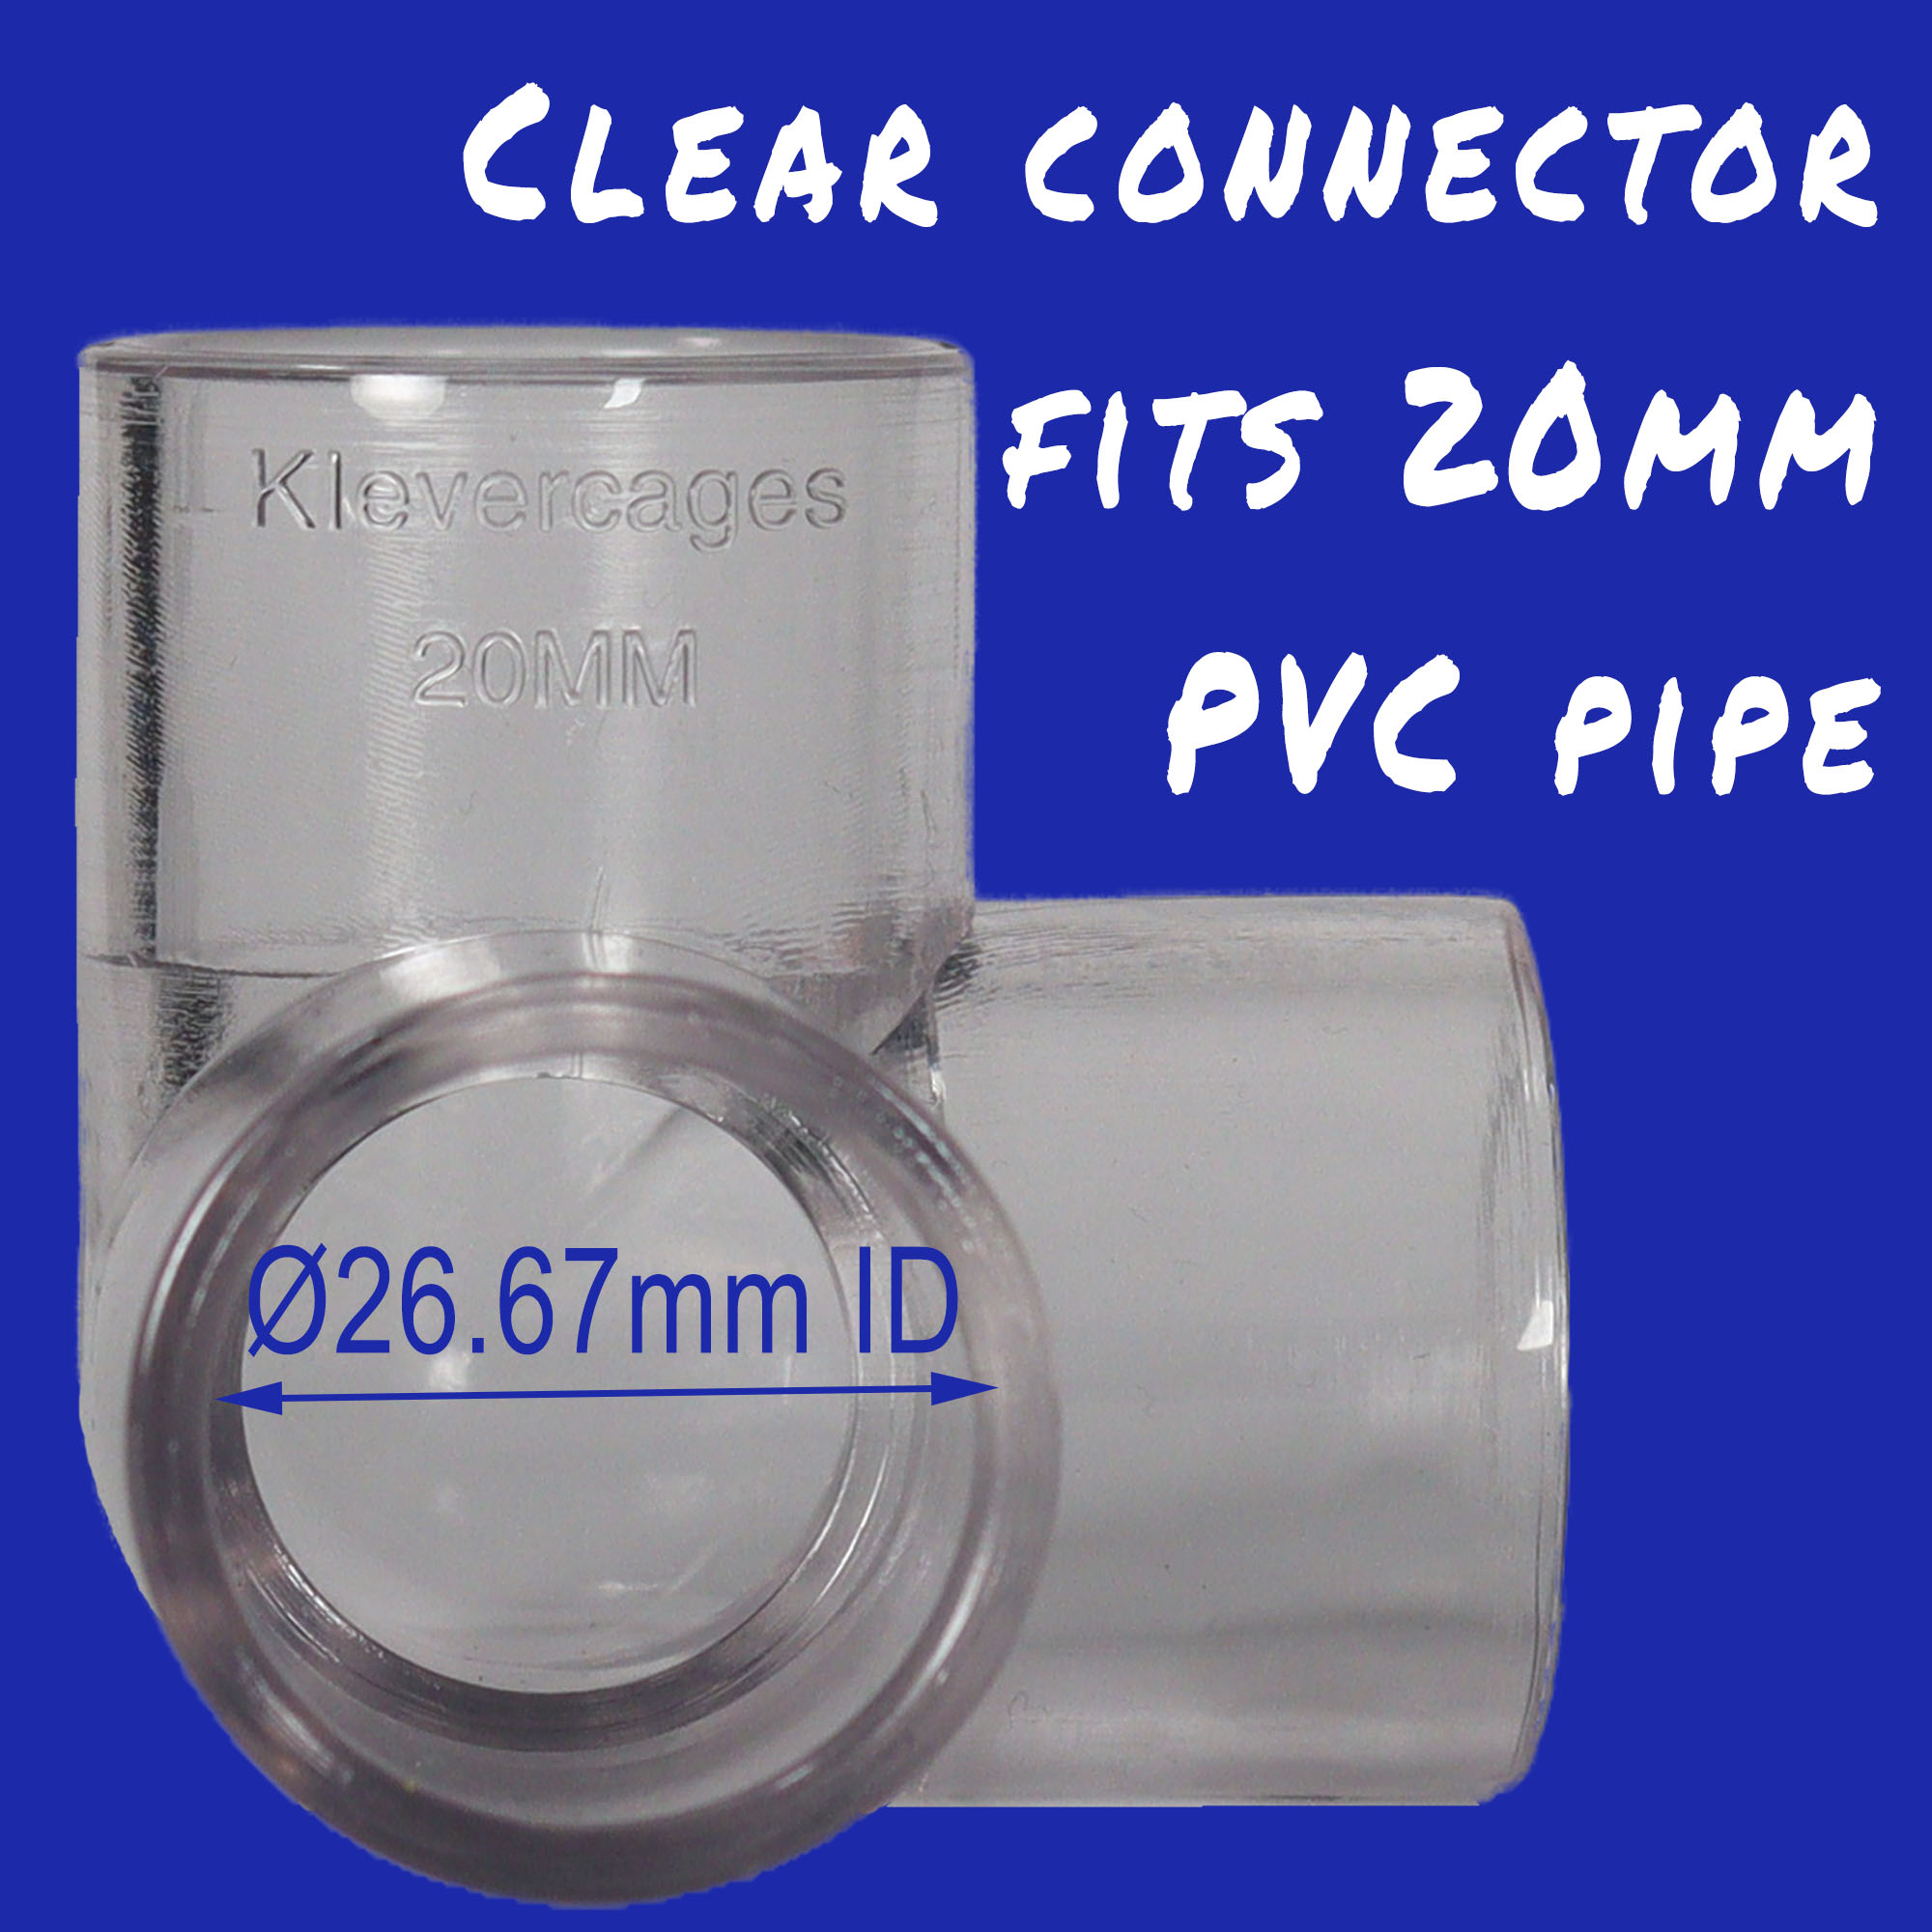 clear-connector-to-fit-plumbing-pressure-pipe-20mm-from-klever-cages-australian-made-ebay.jpg